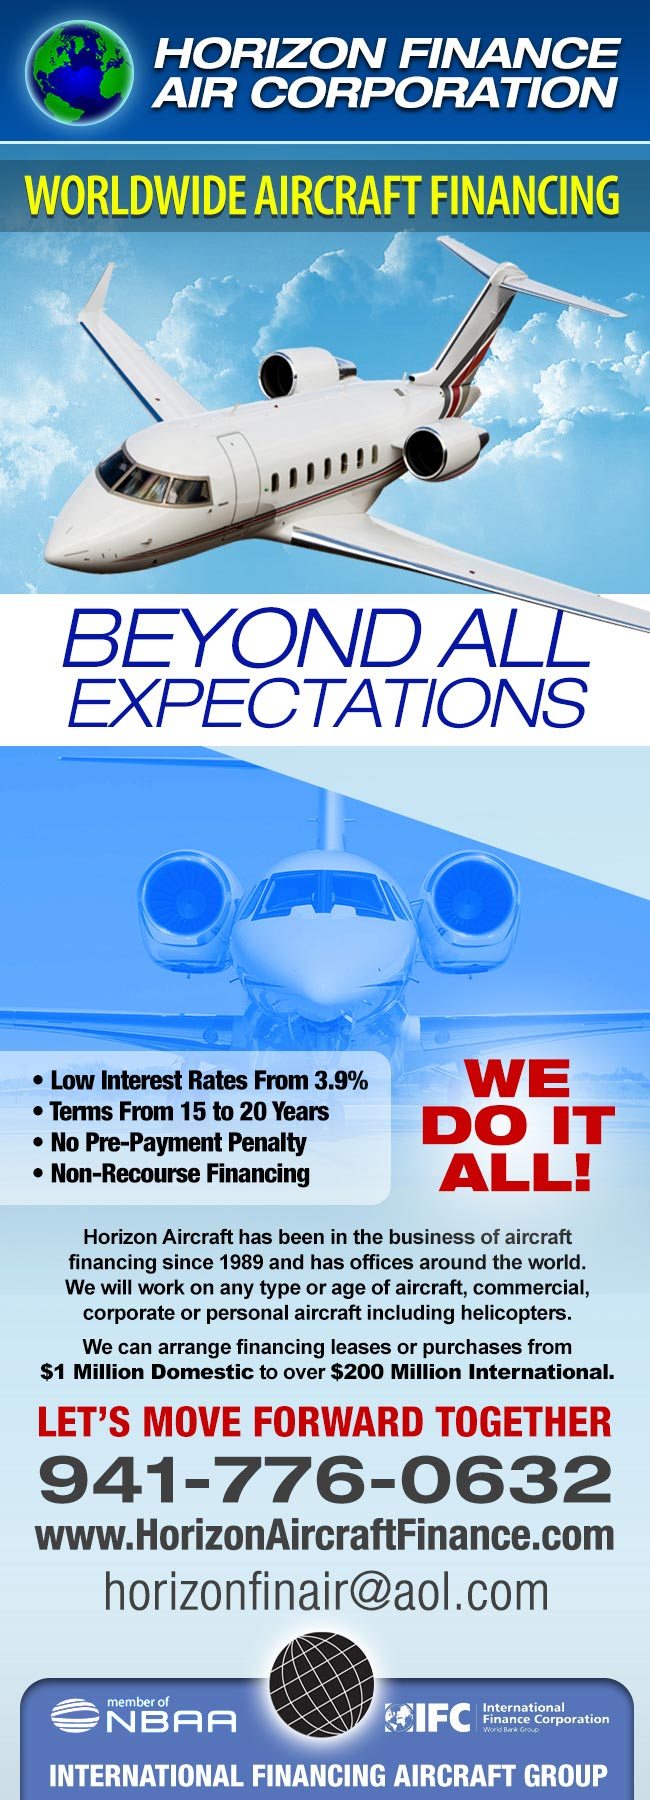 Horizon Finance Air Corporation | Worldwide Aircraft Financing